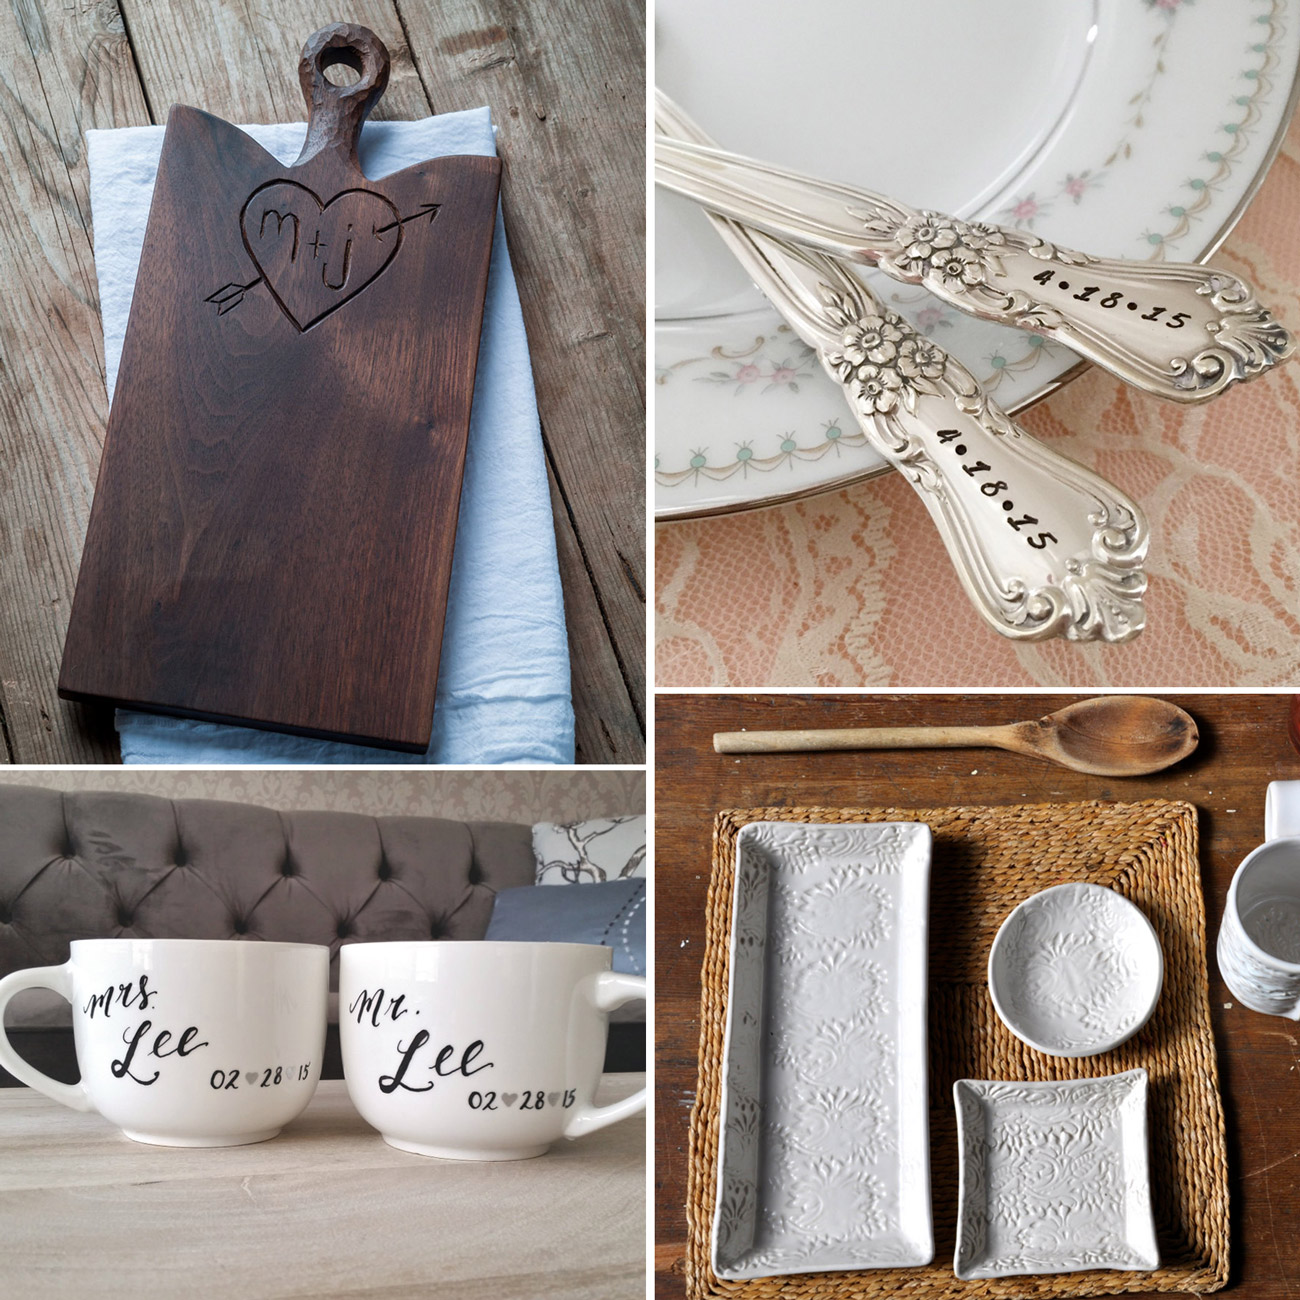 Wedding GIft Ideas from Etsy Canada